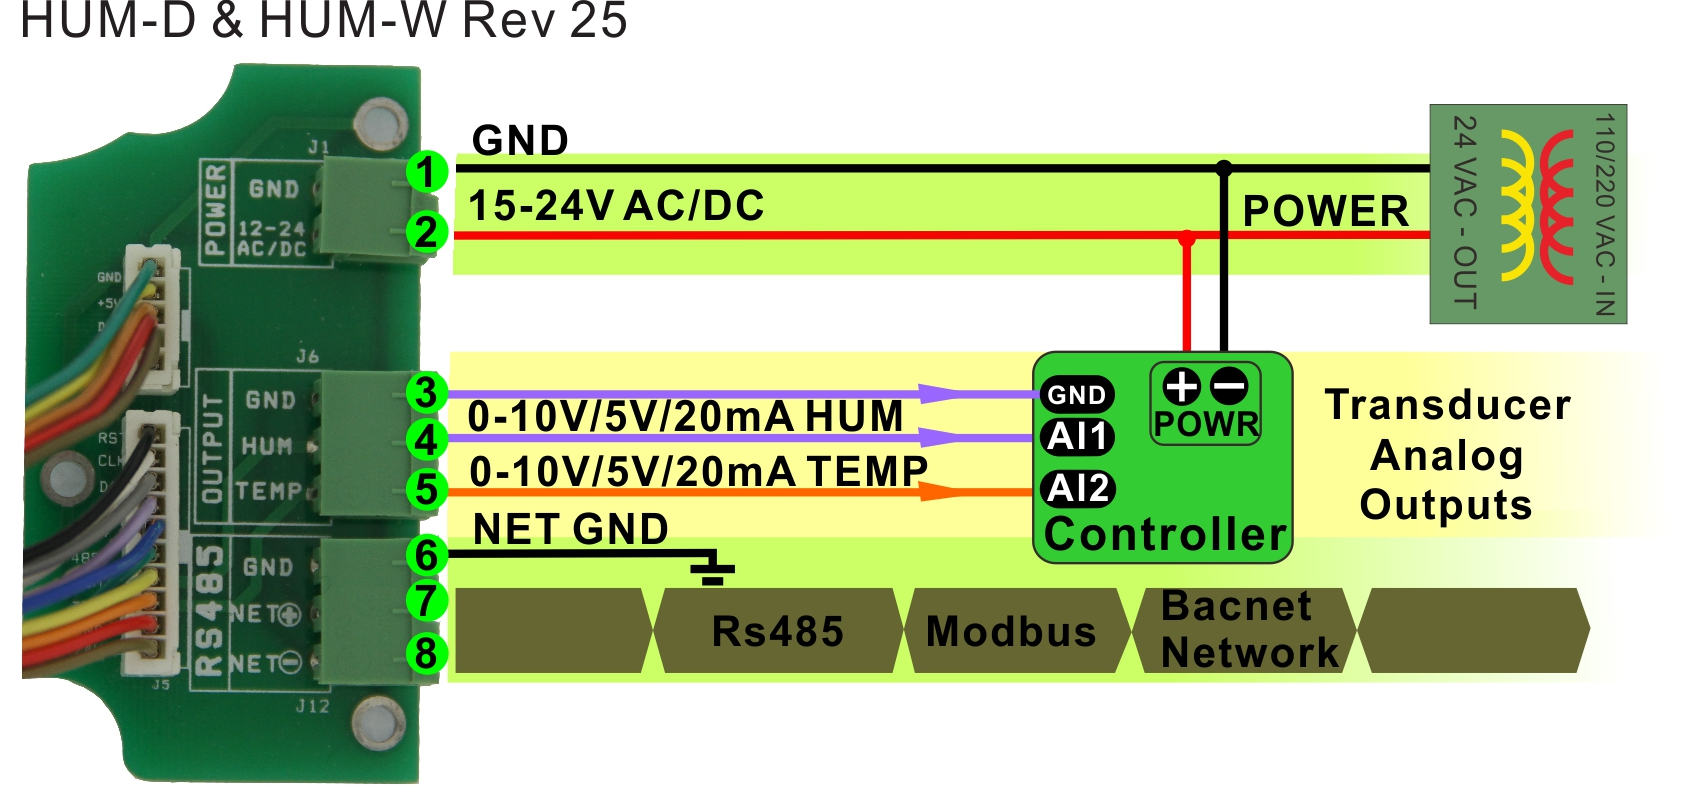 humidity and temp transmitters bravo controls part number scheme